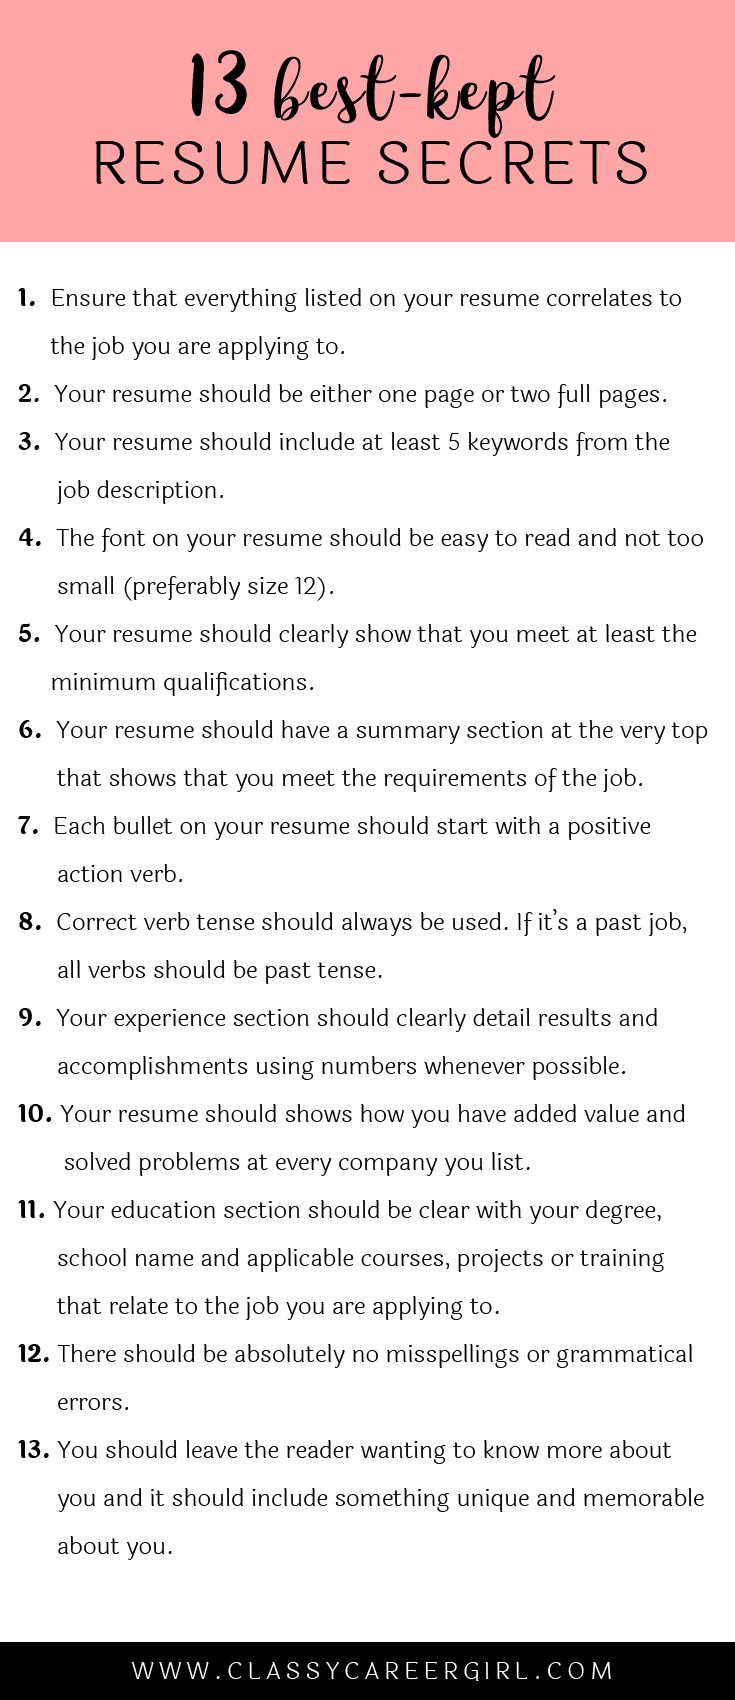 Opposenewapstandardsus  Pleasant  Ideas About Resume On Pinterest  Cv Format Resume Cv And  With Fascinating Some Hiring Managers Will Toss Your Resume Out If You Dont Know These  With Agreeable Leadership Resume Examples Also Sample Pharmacist Resume In Addition Resume Writing Software And What Makes A Great Resume As Well As Job Descriptions For Resume Additionally Cover Page For A Resume From Pinterestcom With Opposenewapstandardsus  Fascinating  Ideas About Resume On Pinterest  Cv Format Resume Cv And  With Agreeable Some Hiring Managers Will Toss Your Resume Out If You Dont Know These  And Pleasant Leadership Resume Examples Also Sample Pharmacist Resume In Addition Resume Writing Software From Pinterestcom